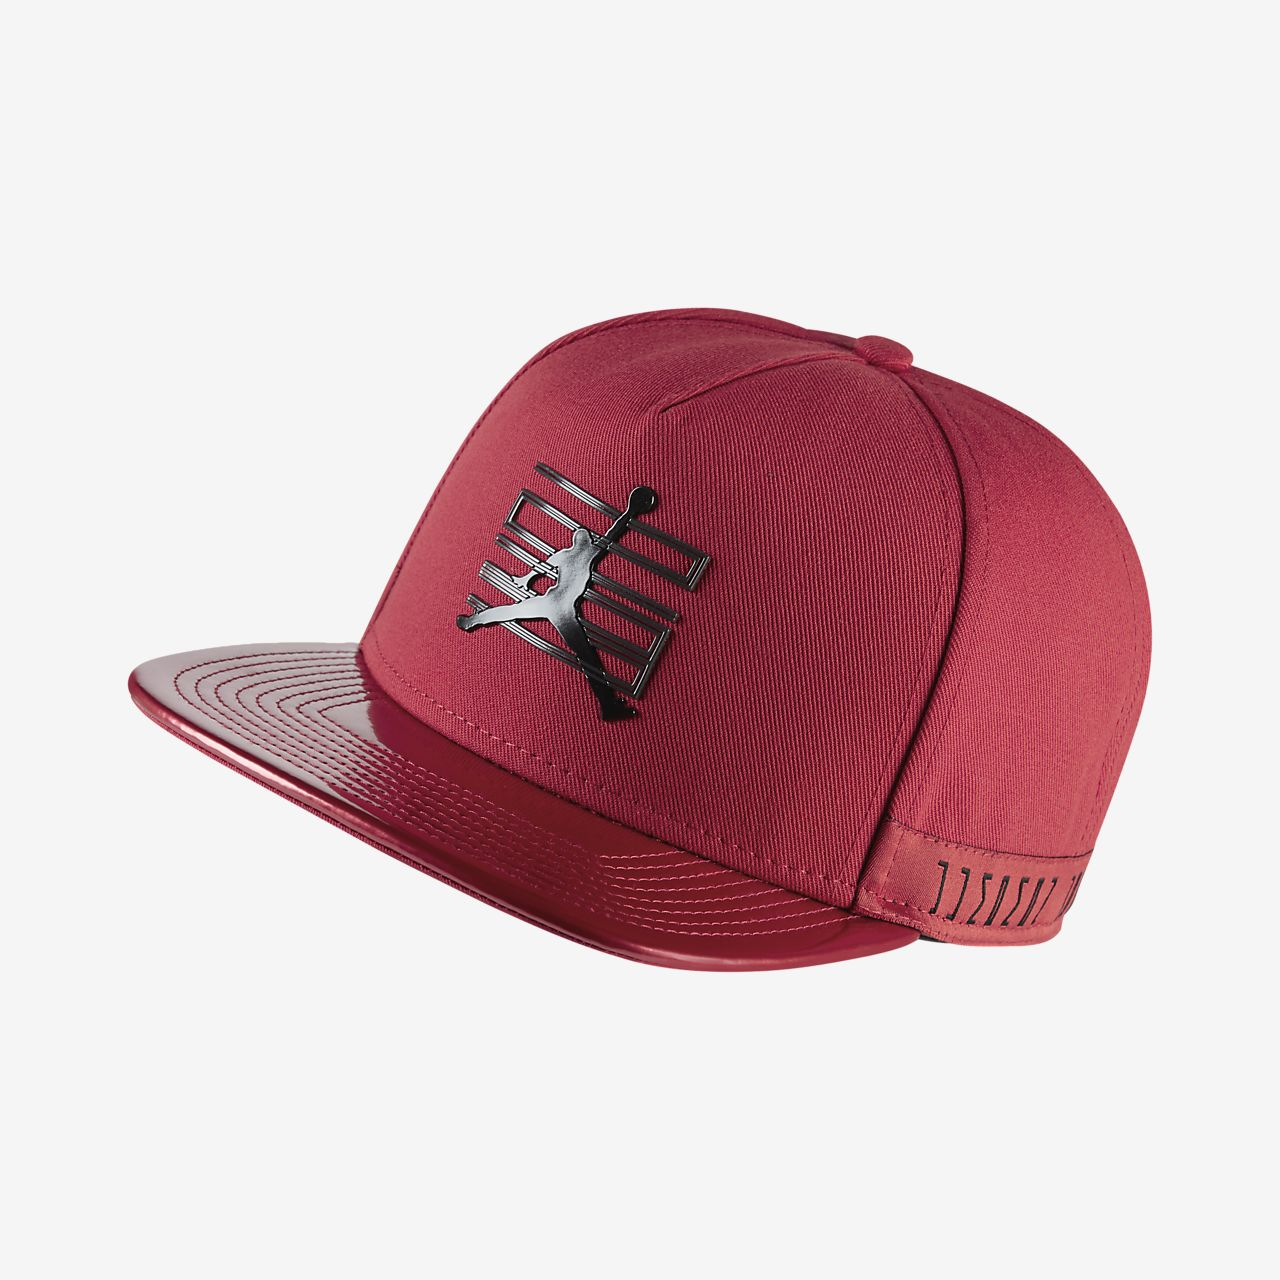 0776c7cb7968 denmark jordan jumpman snapback red ba661 c83e4  clearance jordan 11  snapback adjustable hat 98401 66be4